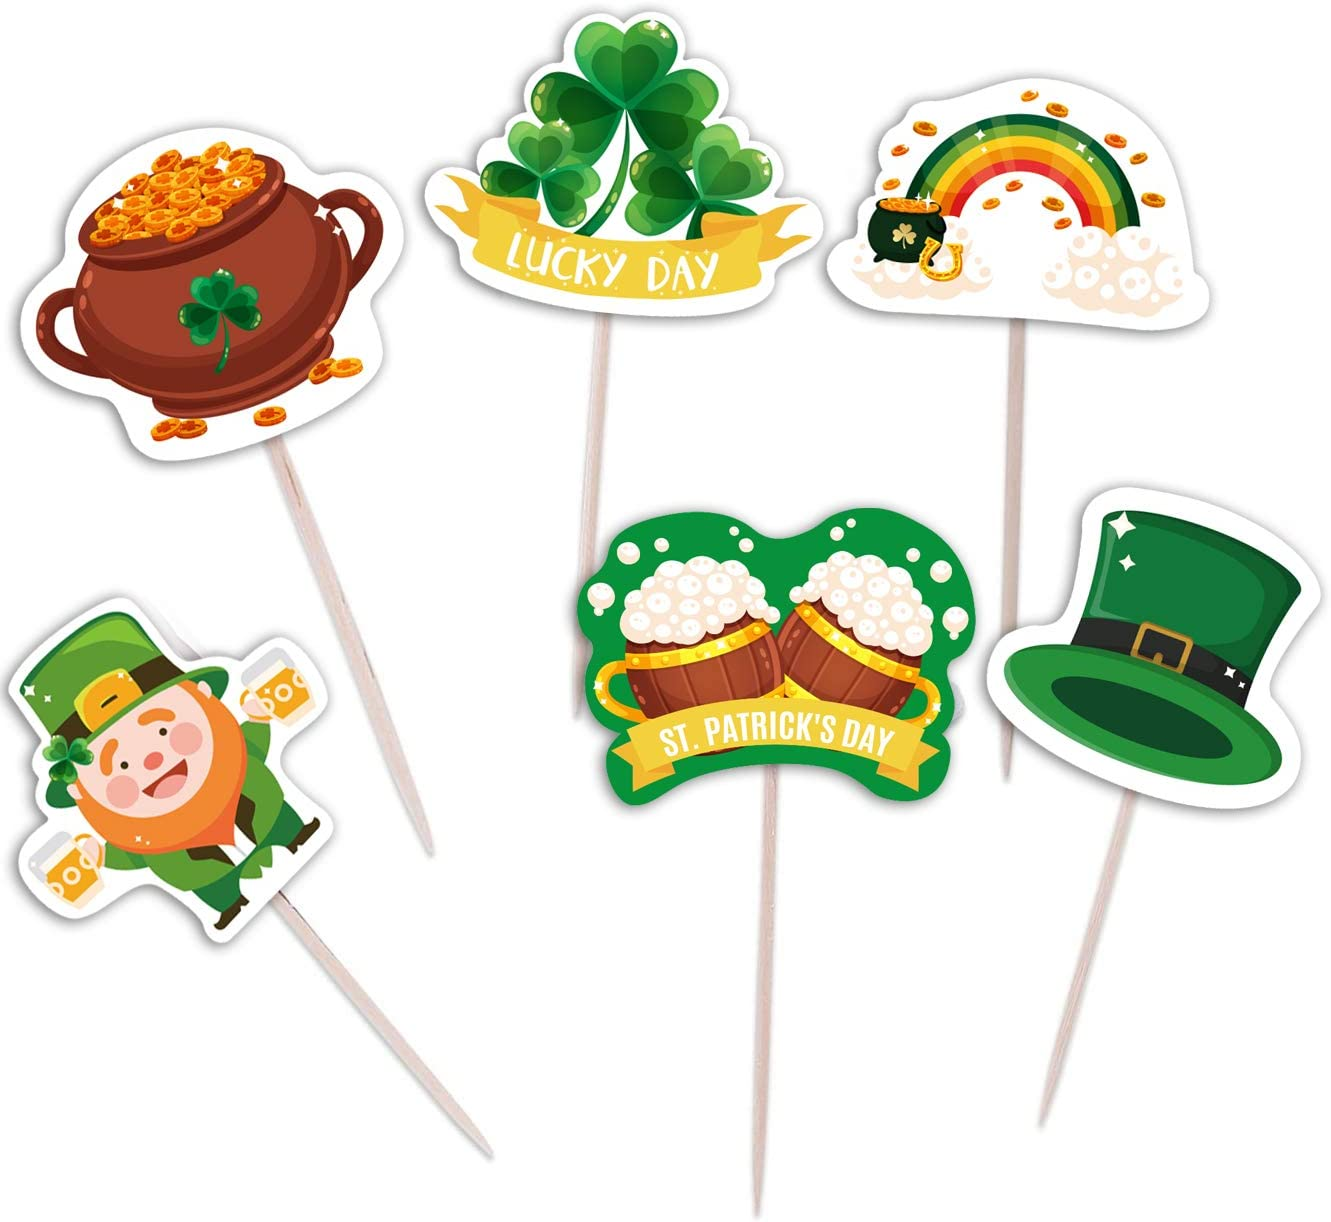 St. Patrick's Day Cupcake Toppers Picks - Shamrock Irish Lucky Toothpicks Cake Decorations Party Supplies 144Ct